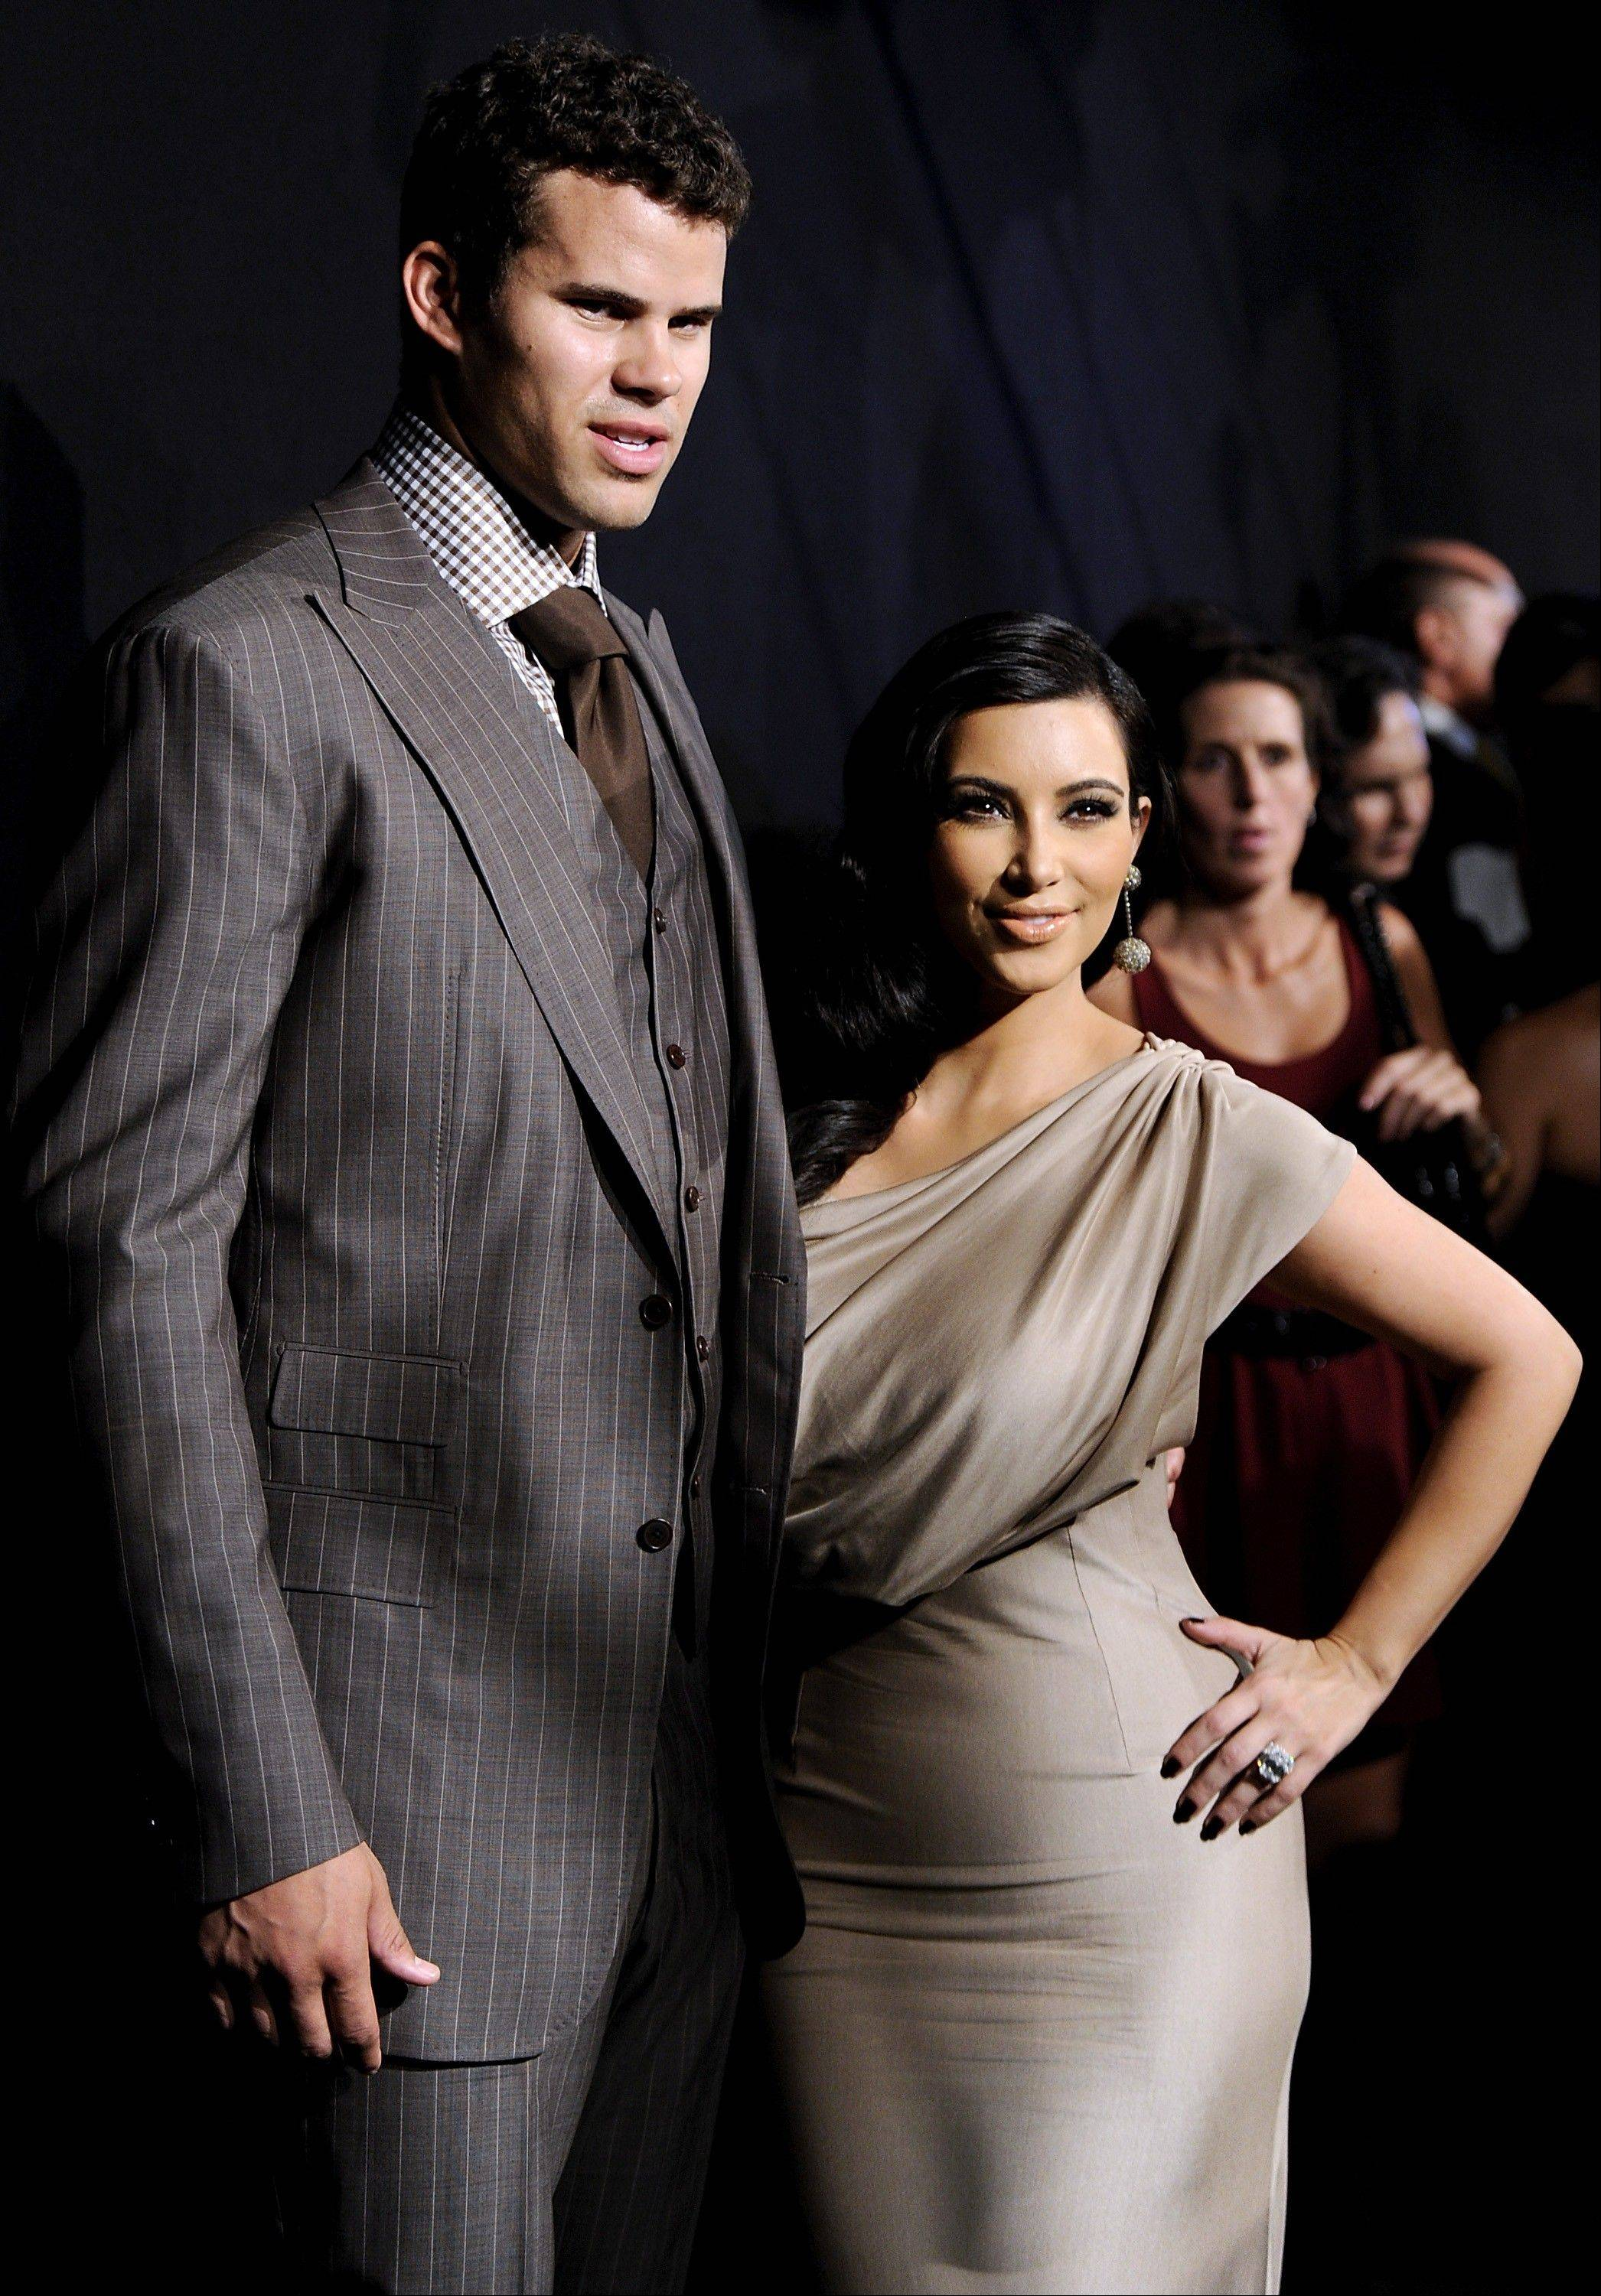 Kim Kardashian and Kris Humphries' divorce is unlikely to be concluded before the end of the year, with Humphries' attorneys seeking detailed records from companies that handle the reality starlet's shows.